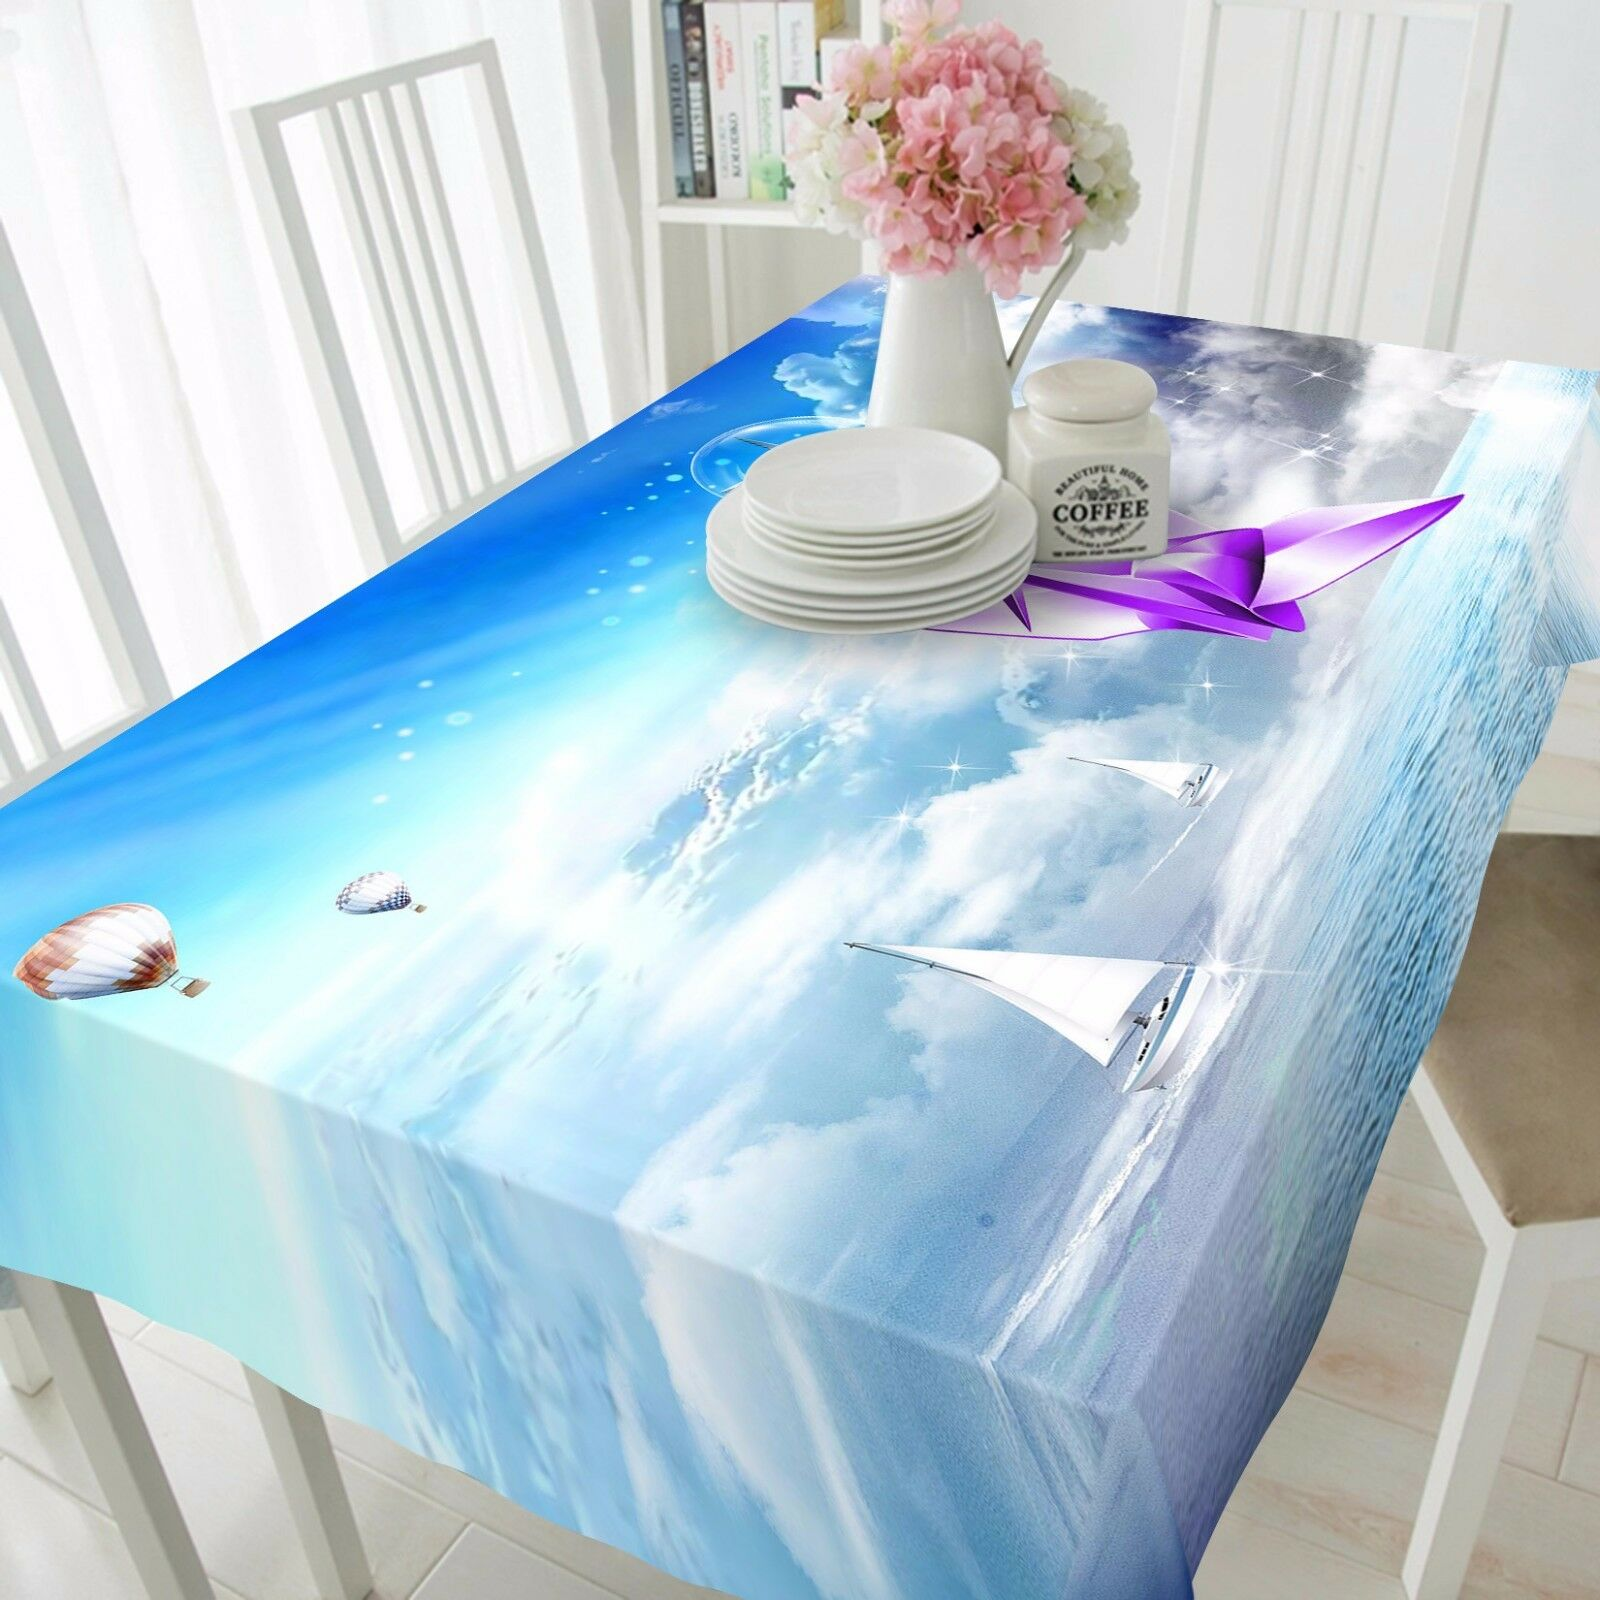 3D Scenery 45 Tablecloth Table Cover Cloth Birthday Party Event AJ WALLPAPER AU